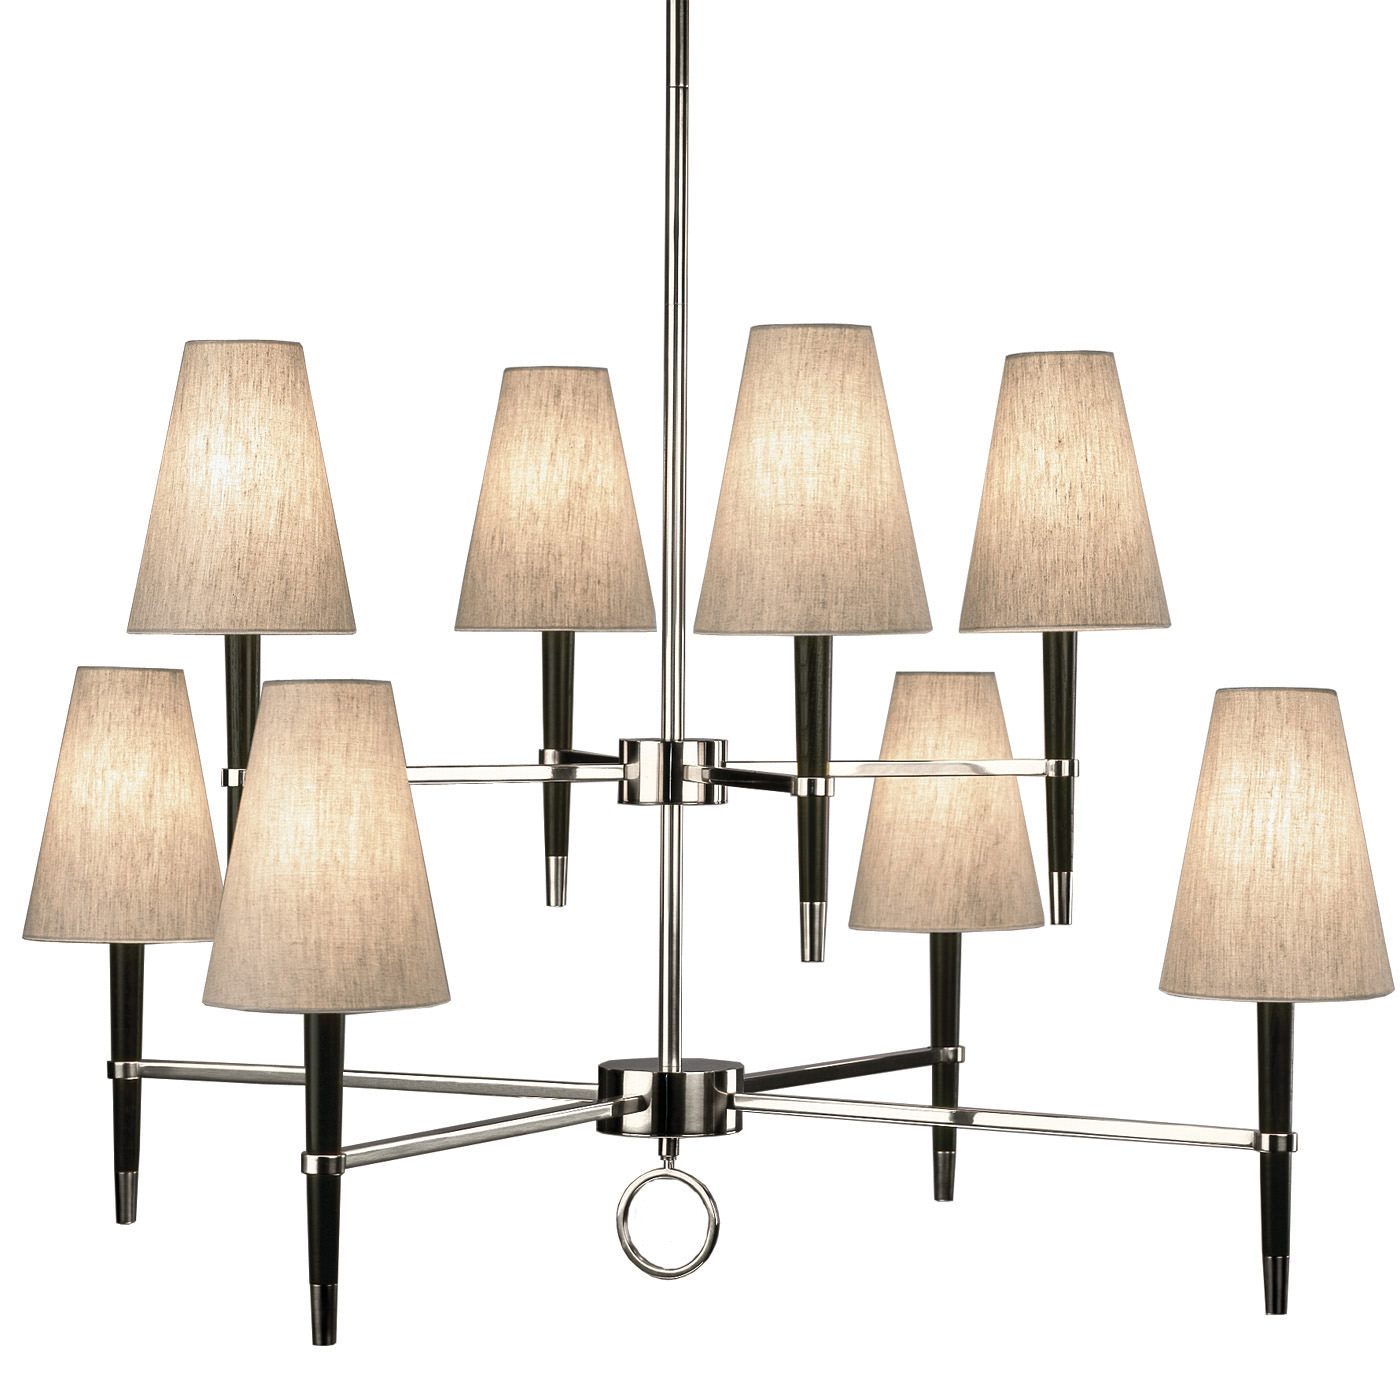 Two tier chandelier by jonathan adler ra pn673 ventana two tier chandelier by jonathan adler ra pn673 aloadofball Image collections